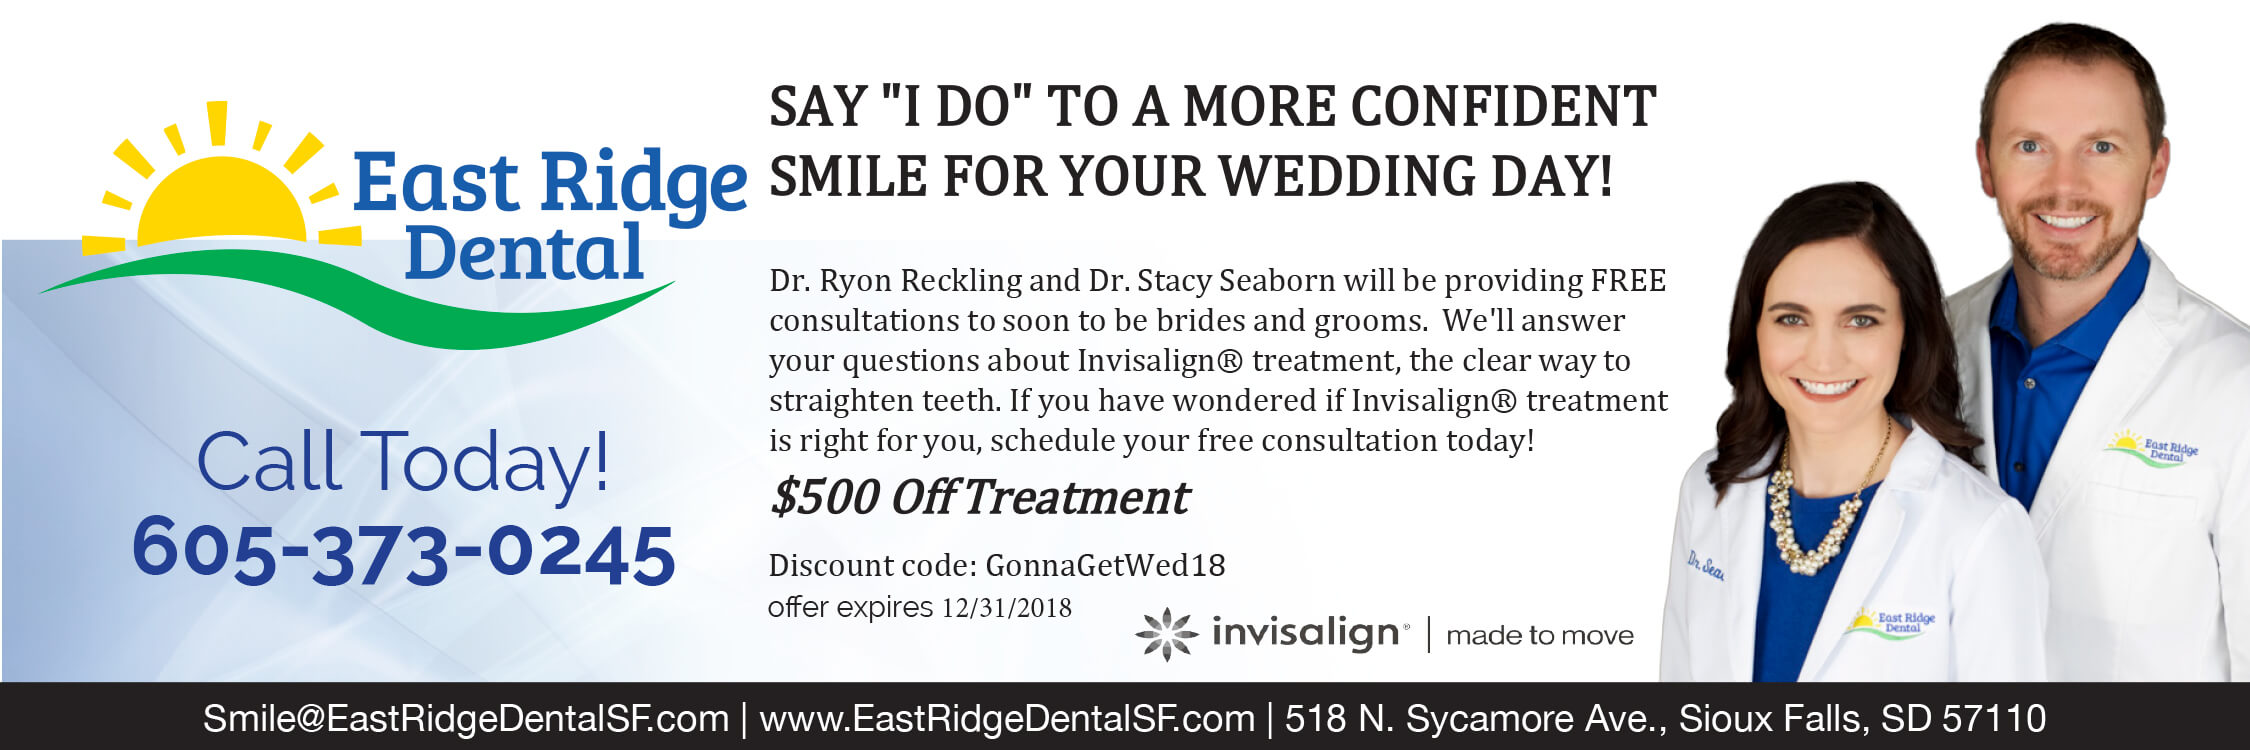 East Ridge Dental Sioux Falls Promotions & Special Offers